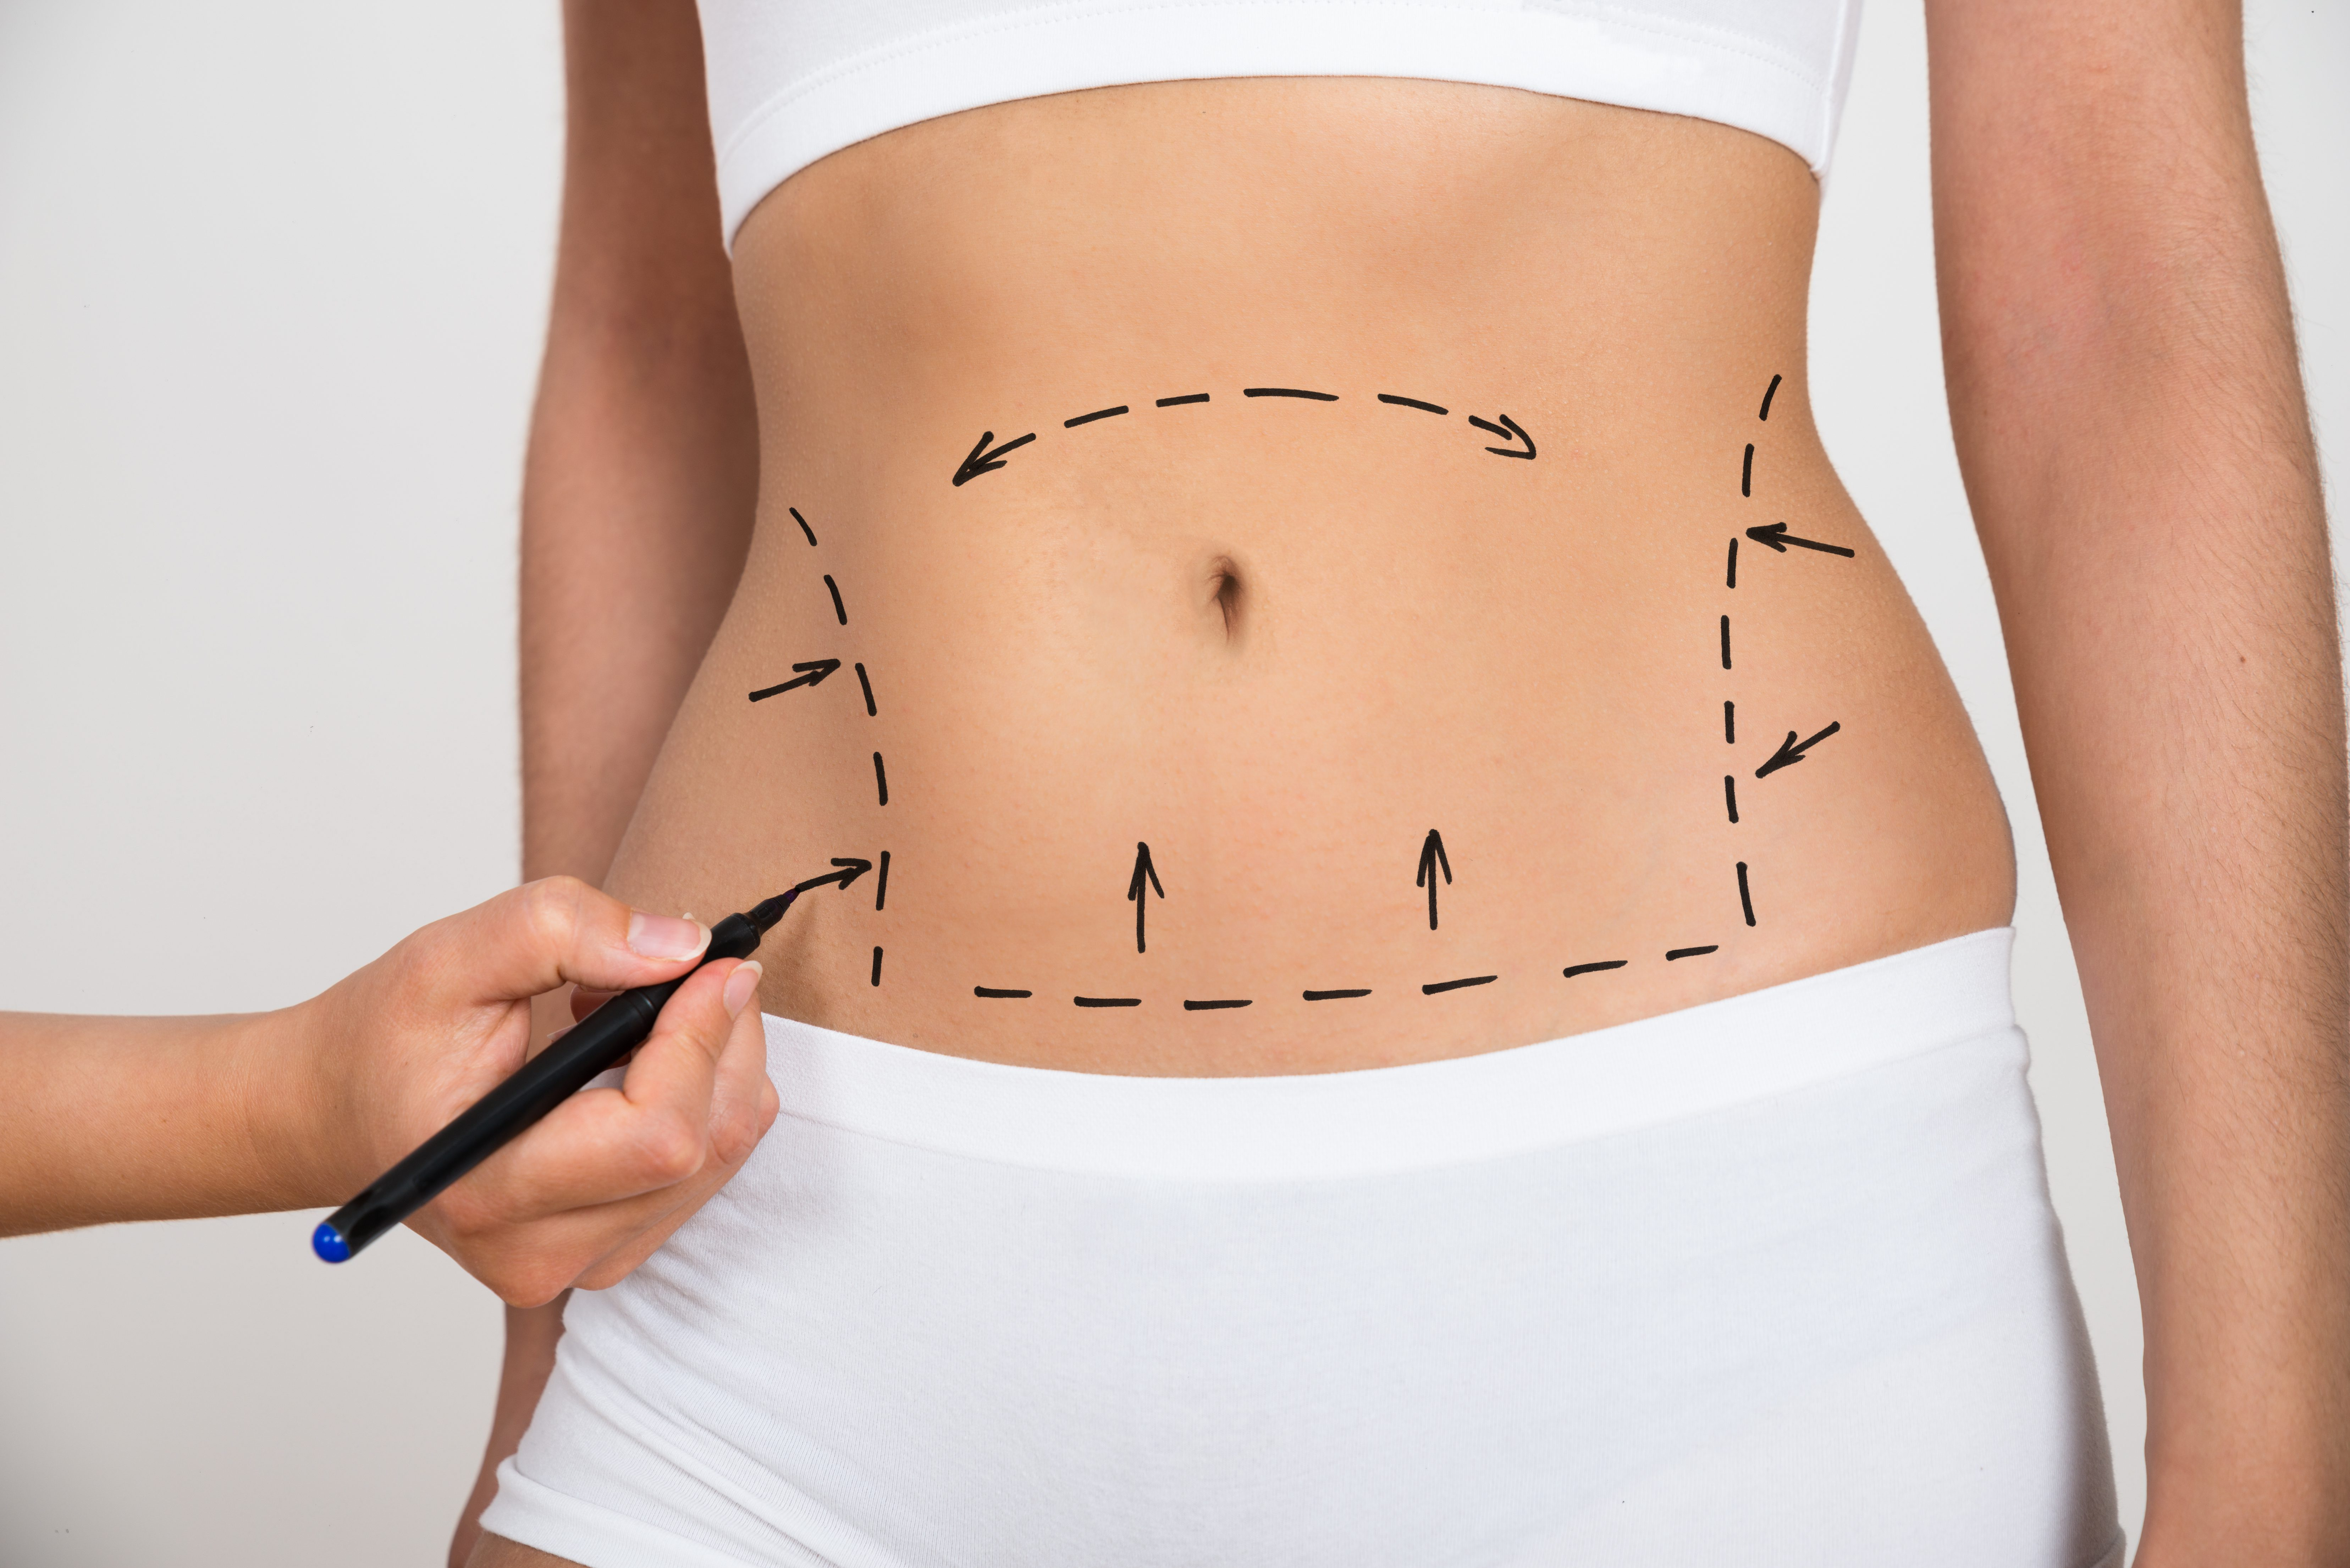 Person Hand Drawing Lines On A Woman's Abdomen As Marks For Abdominal Cellulite Correction